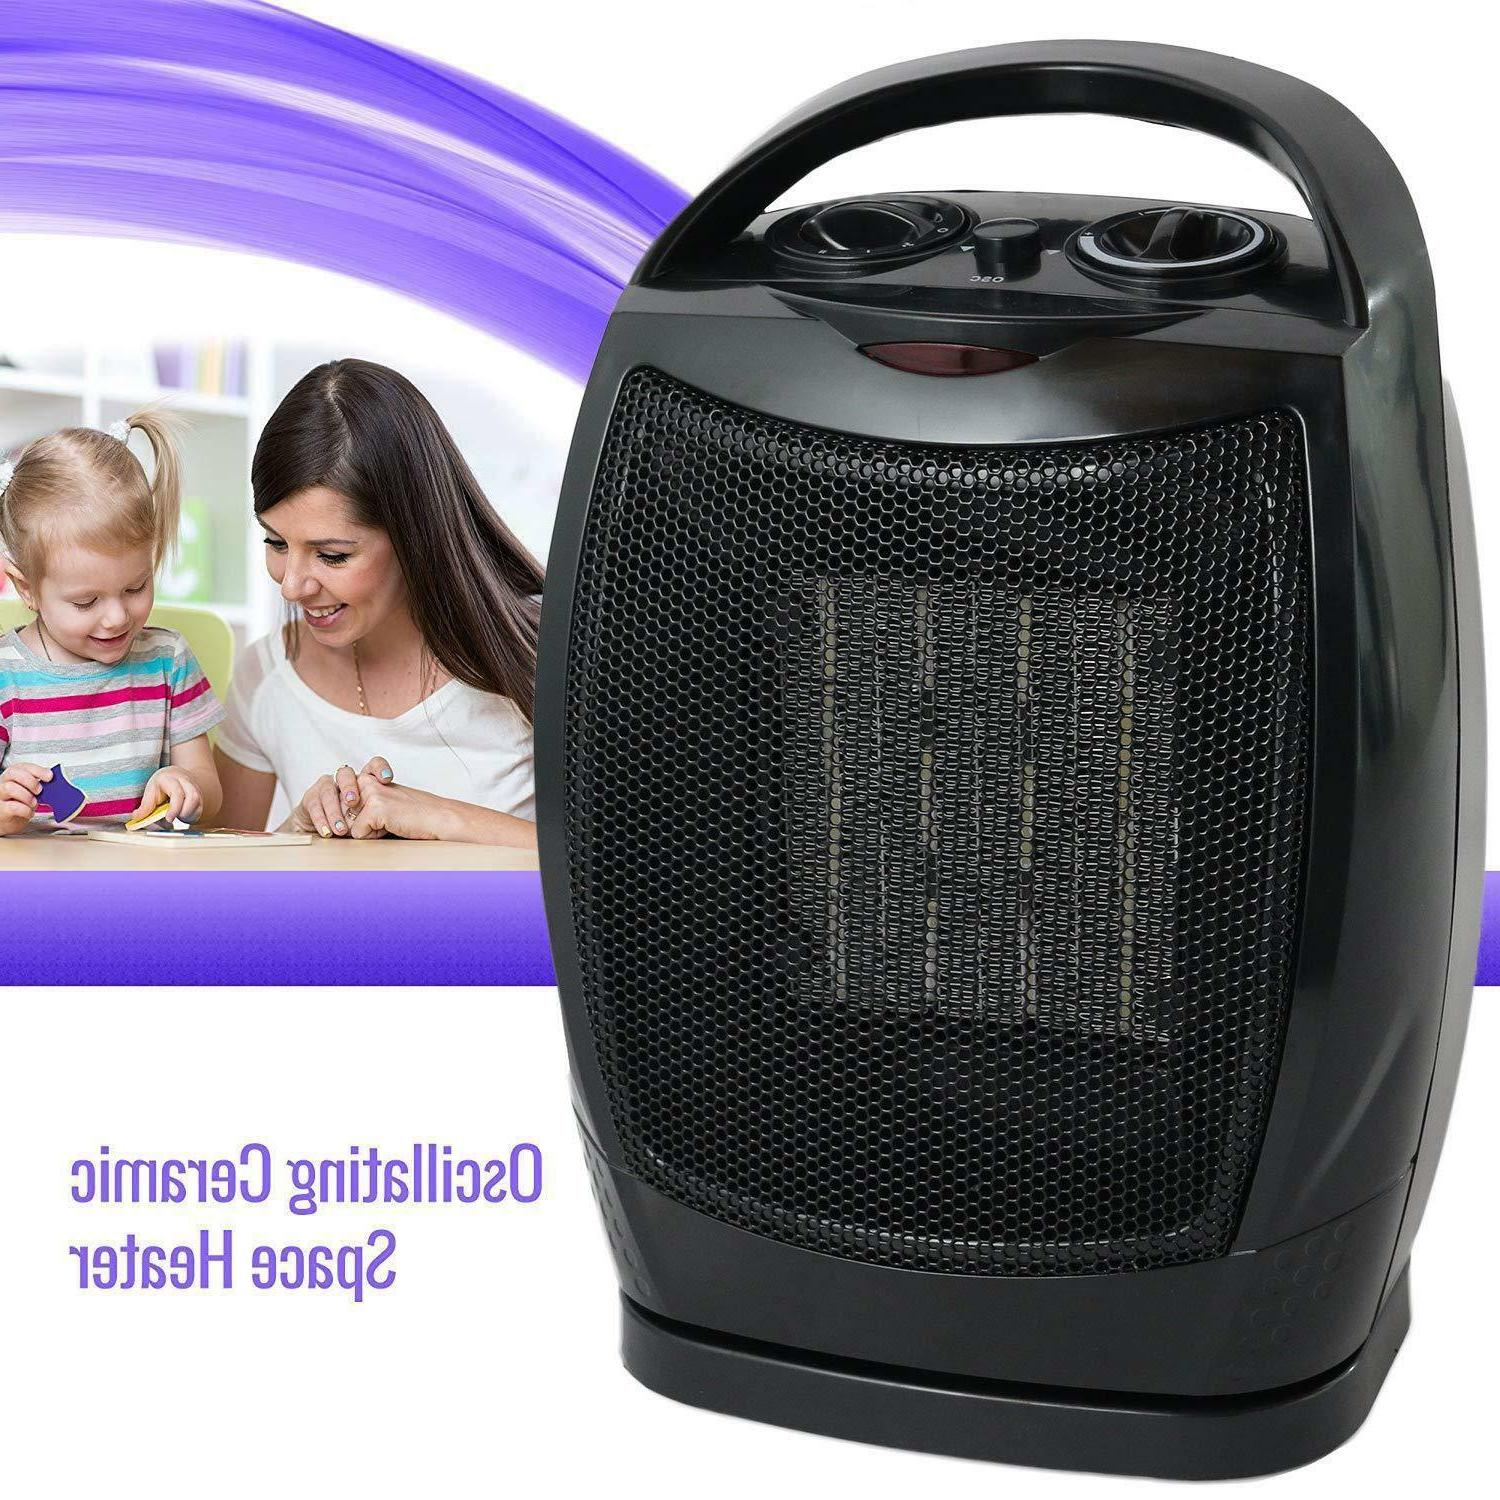 Oscillating Ceramic Space Fan Home Office Portable,